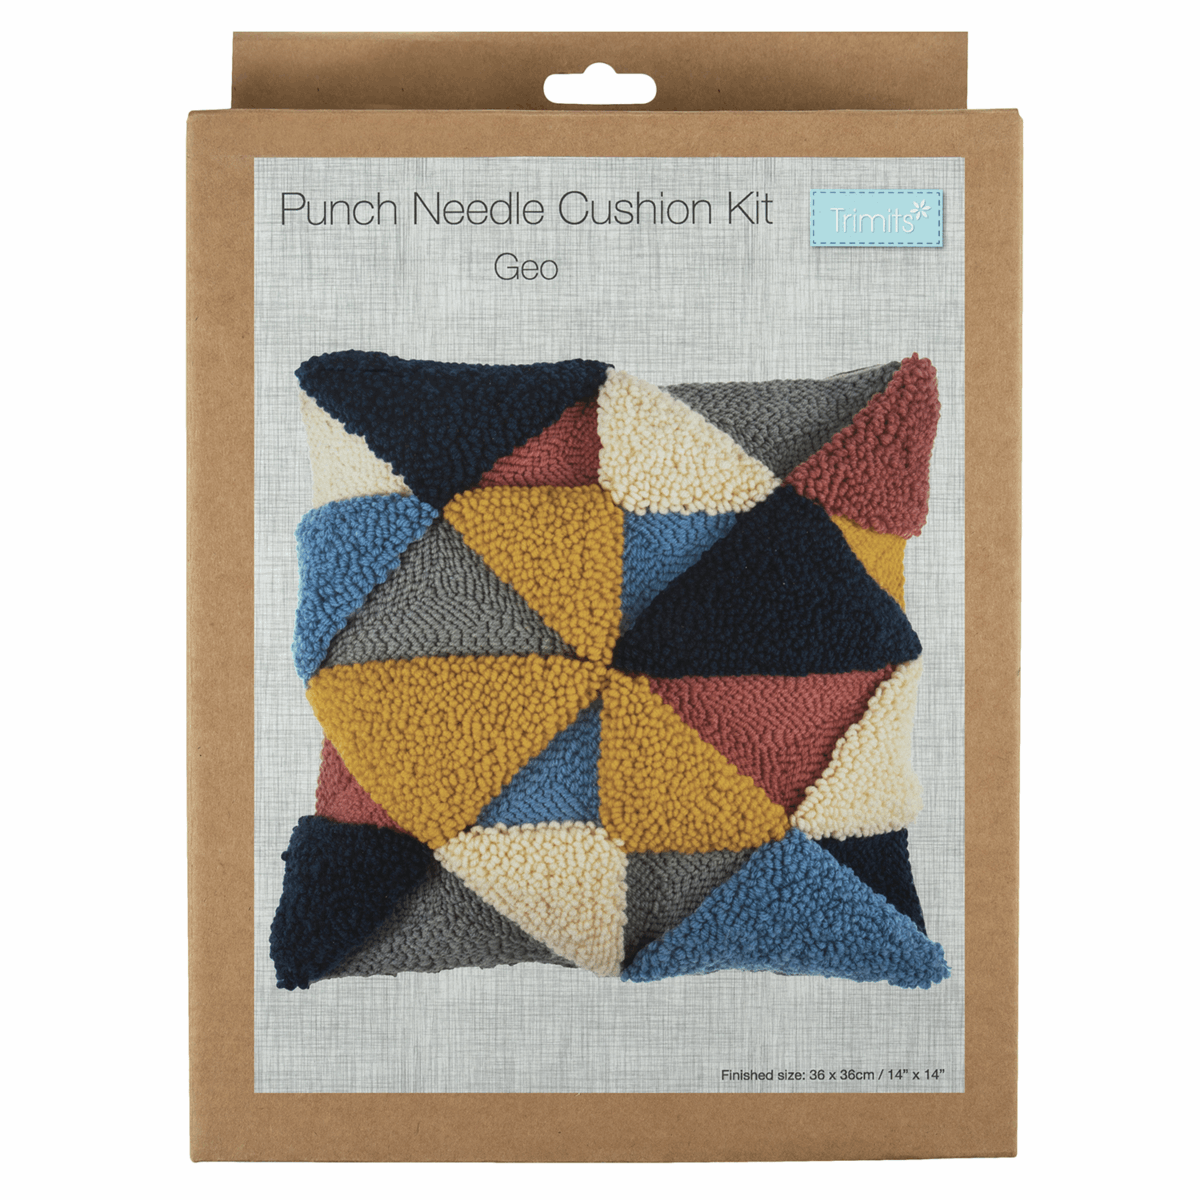 Picture of Punch Needle Kit: Cushion: Geo